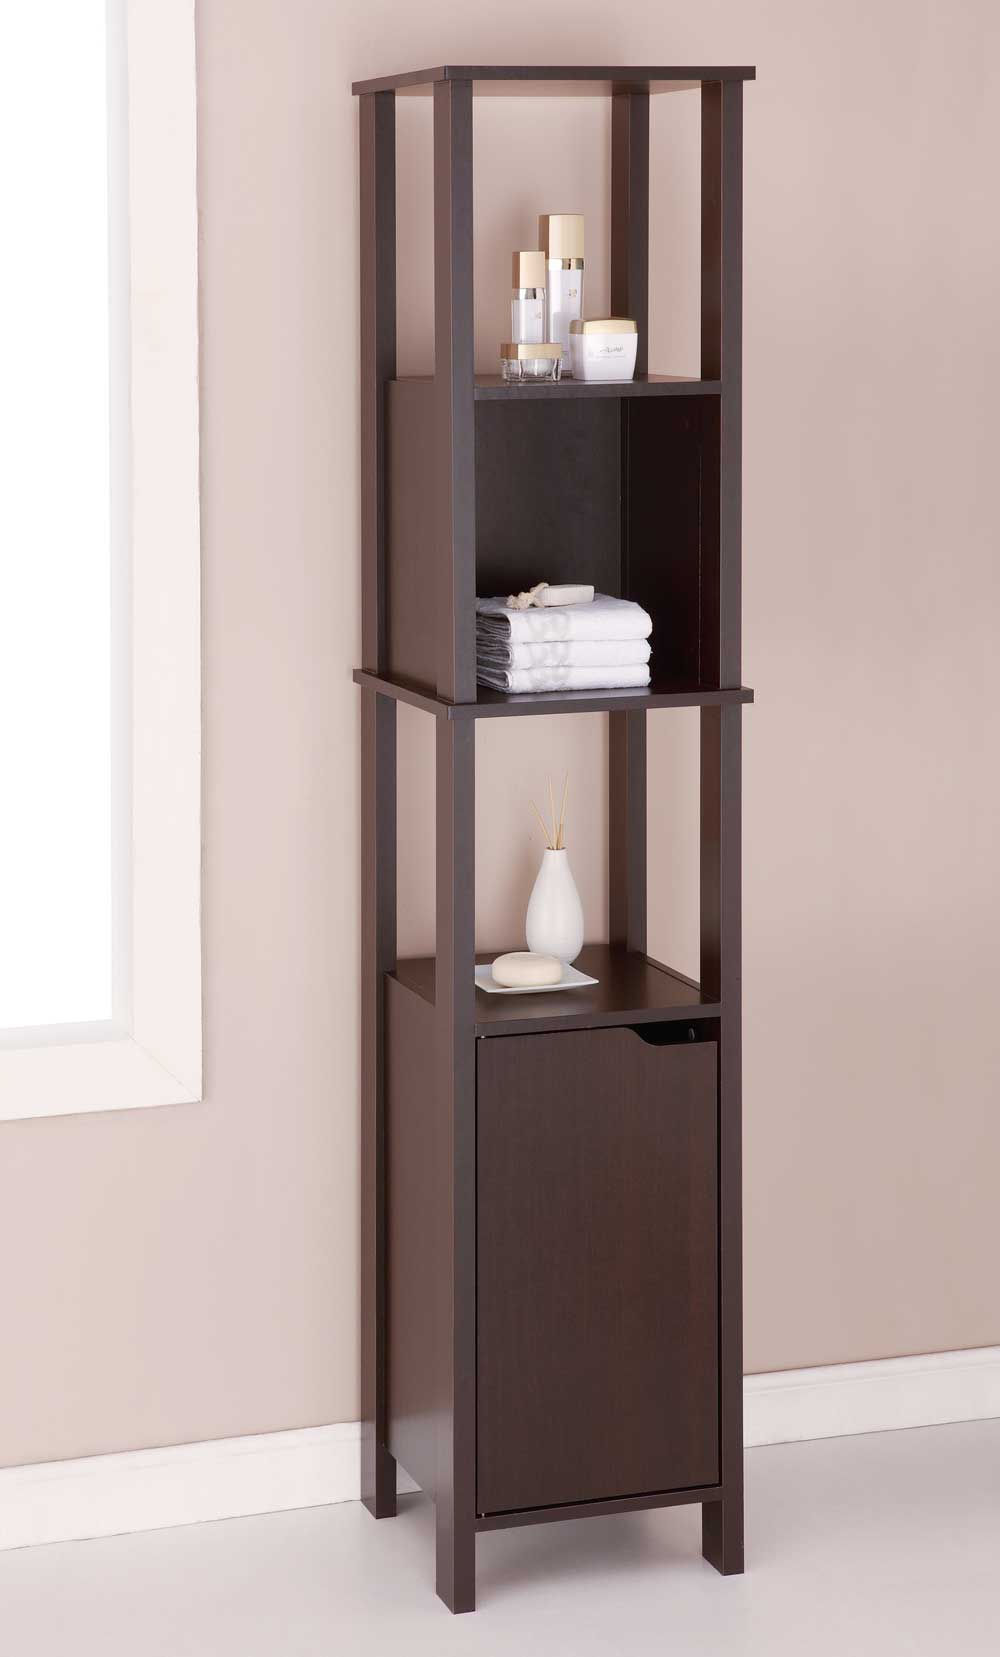 wood cabinet high in bathroom shelves